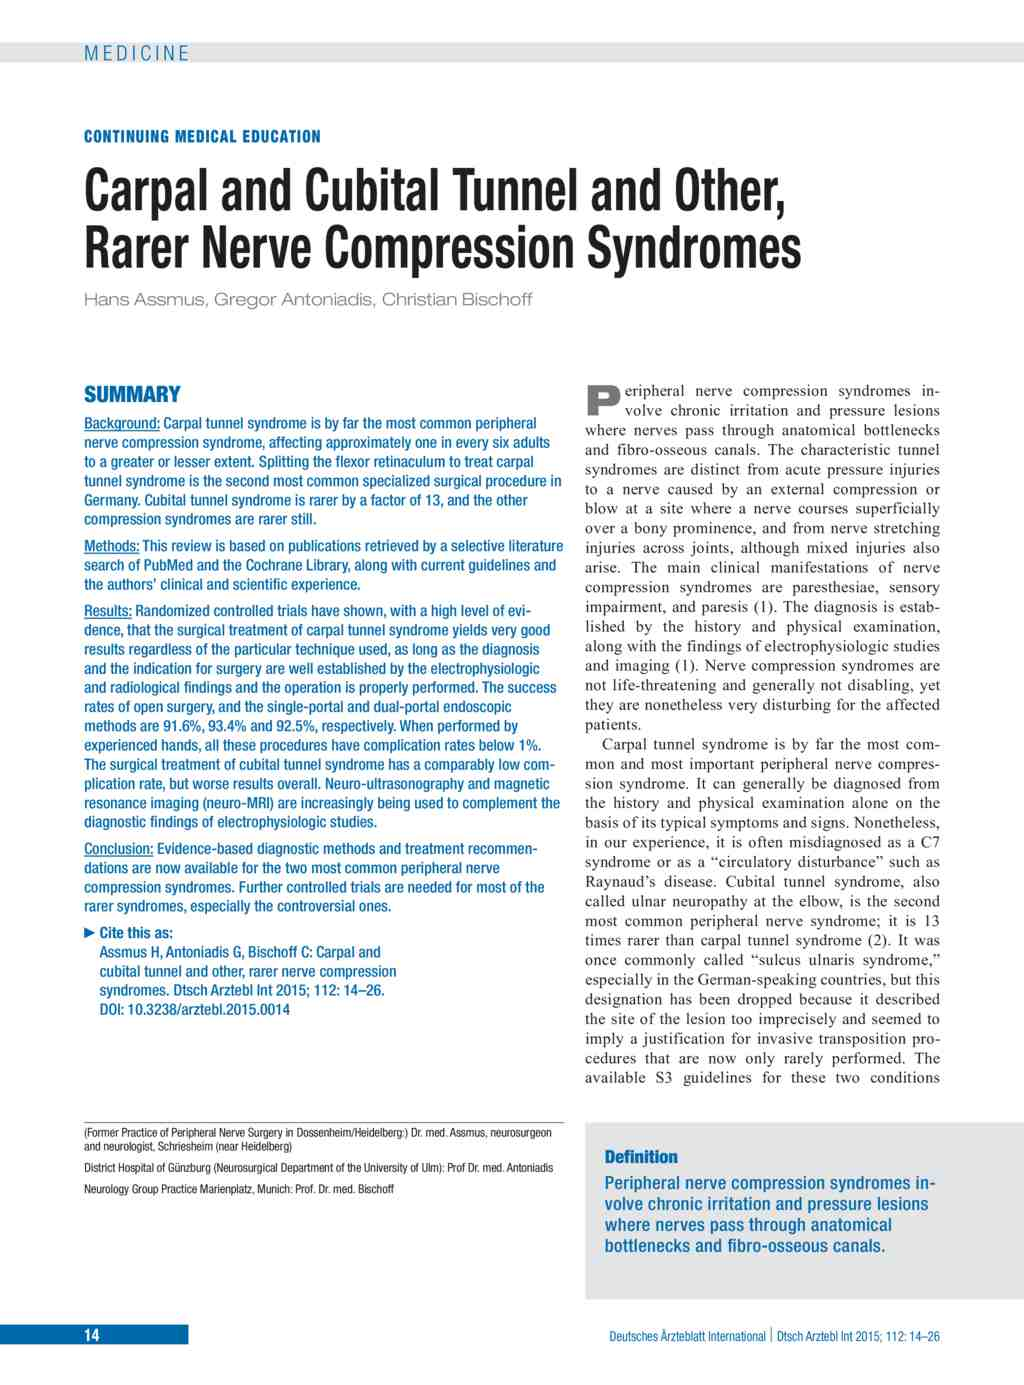 Carpal and Cubital Tunnel and Other, Rarer Nerve Compression ...